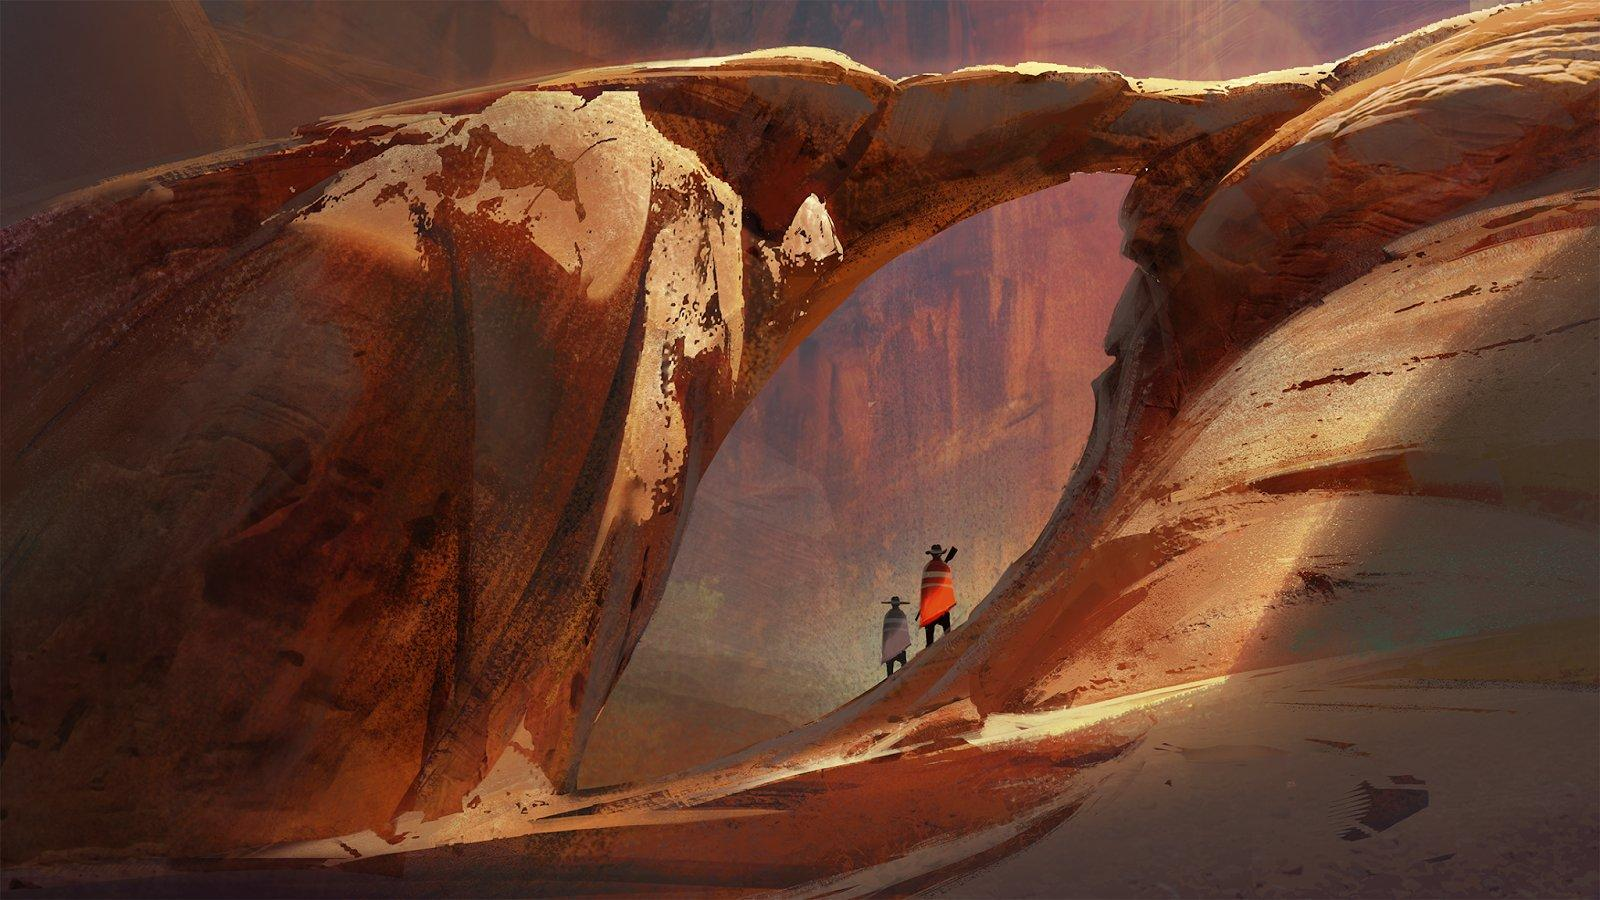 Wicked Concept Artworks by Eytan Zana